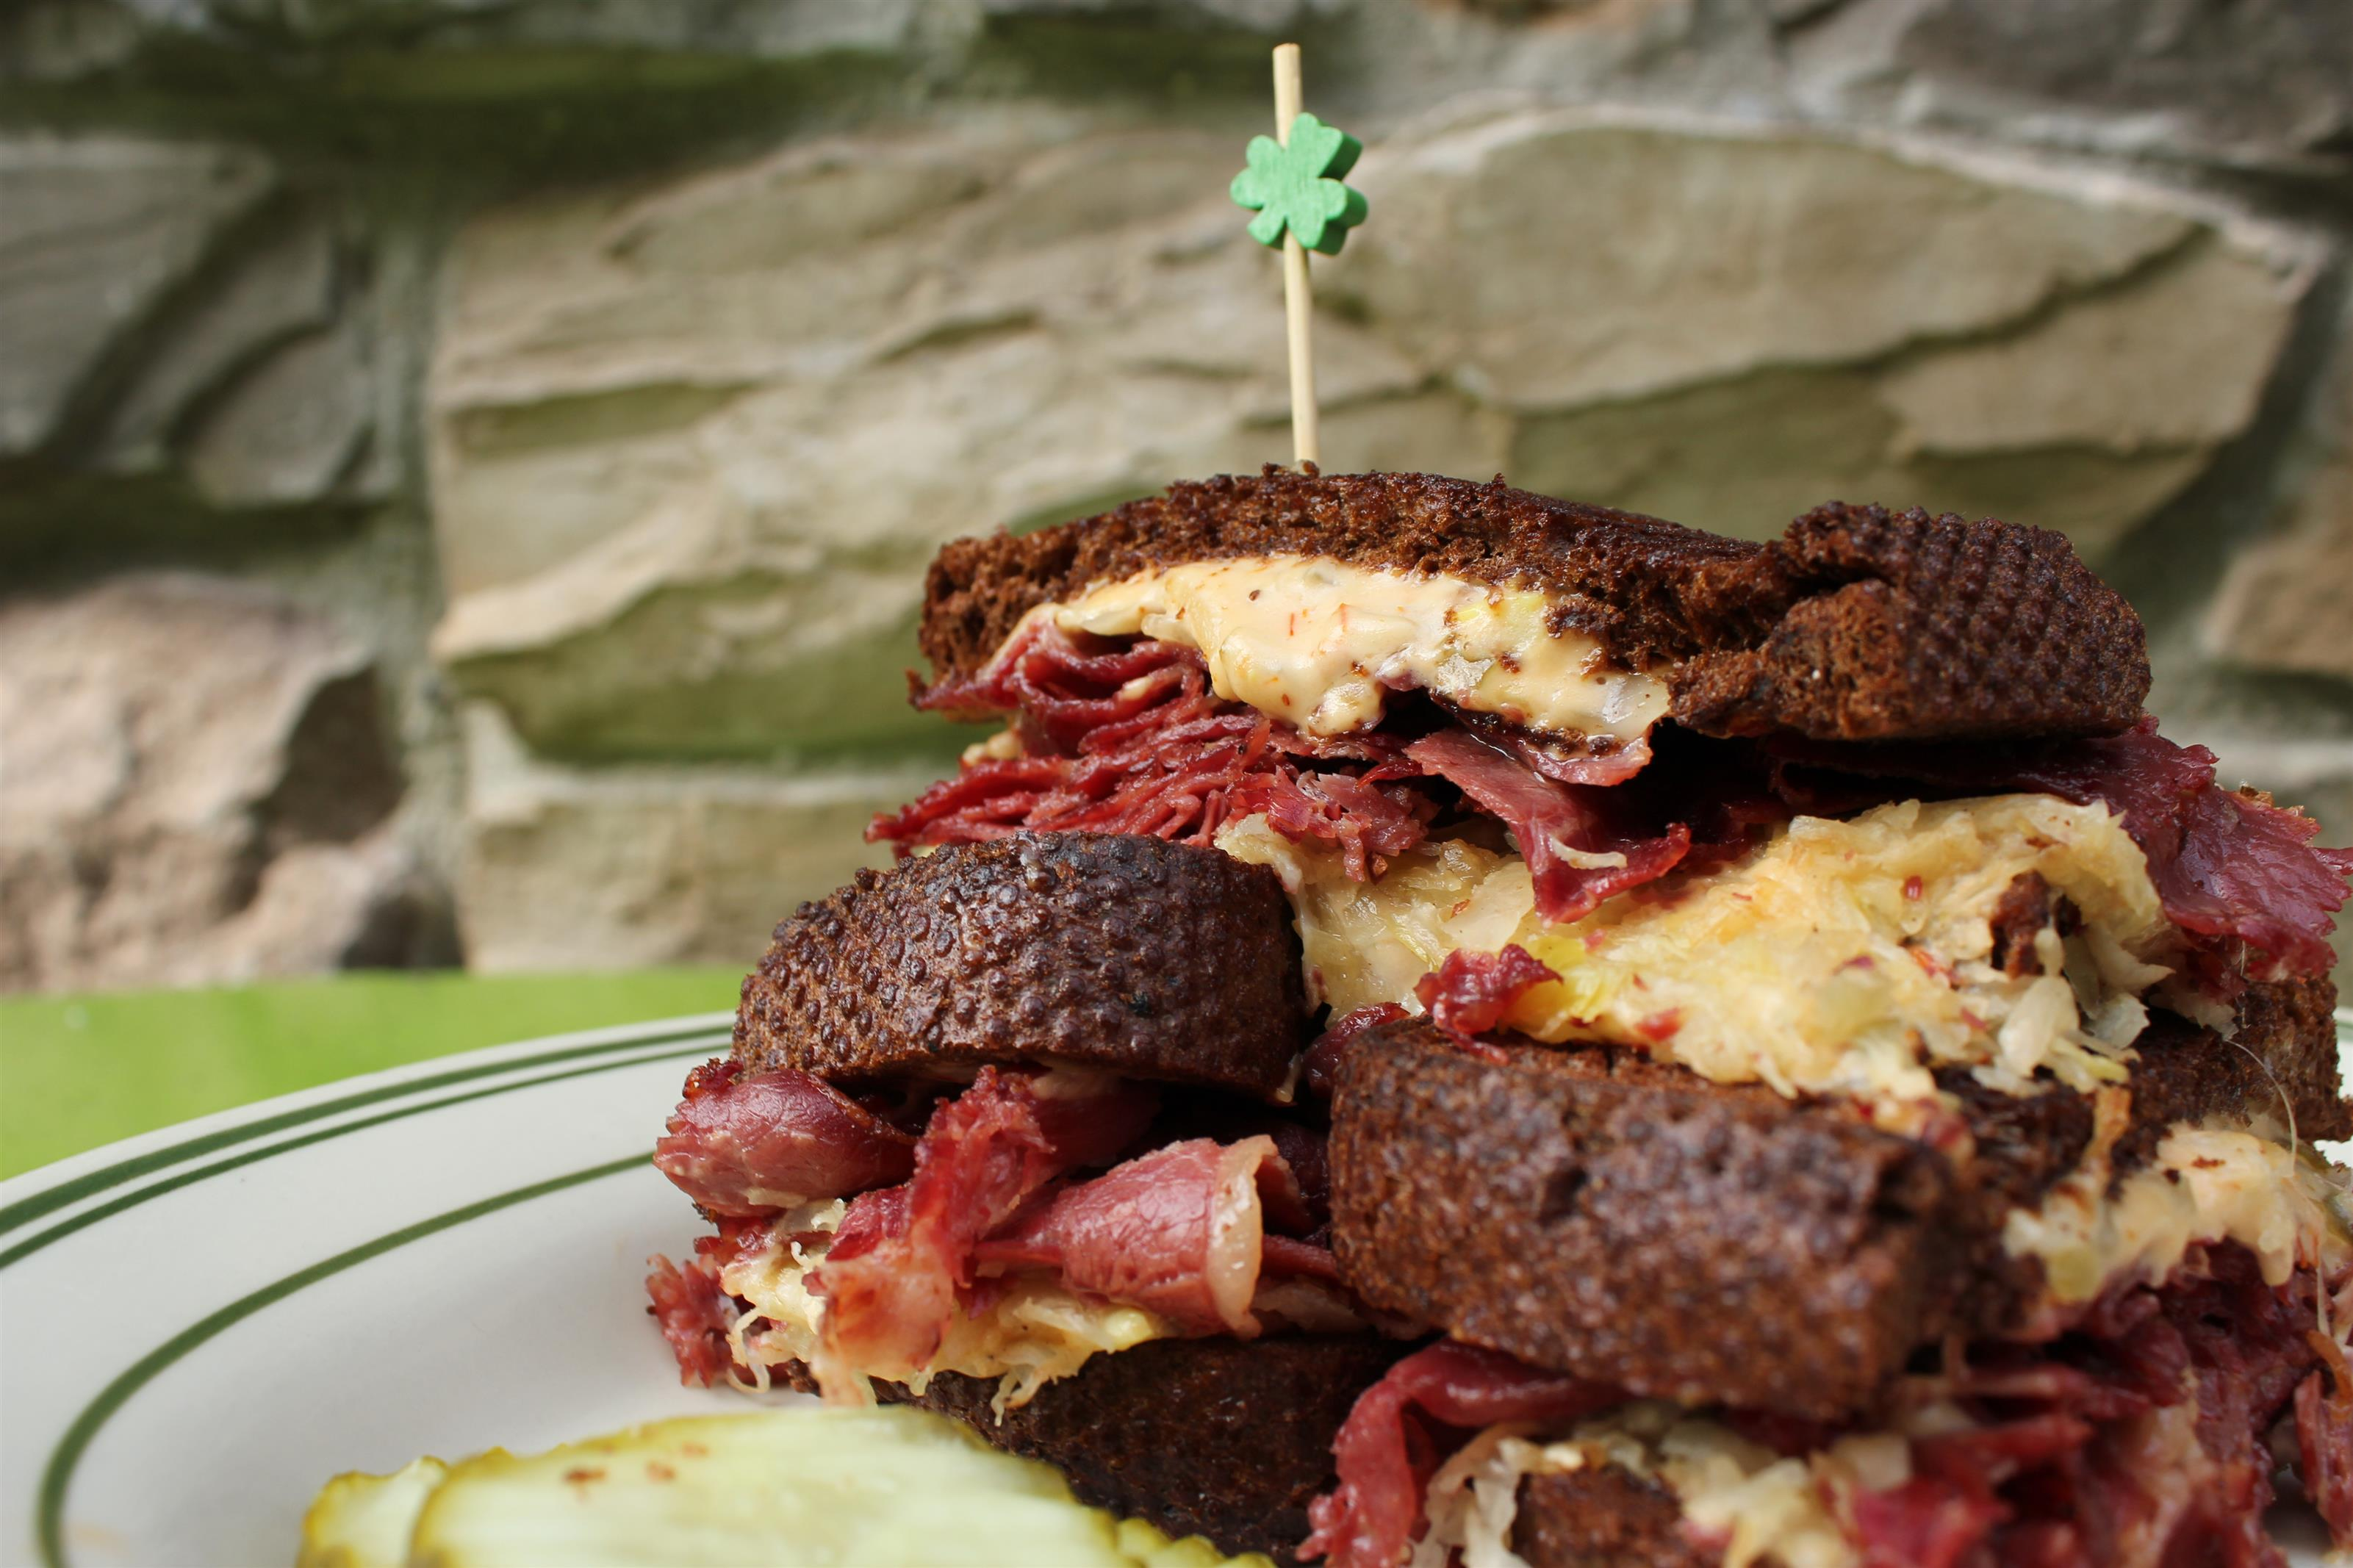 Corned beef sandwich on pumpernickel with sauerkraut and mustard.